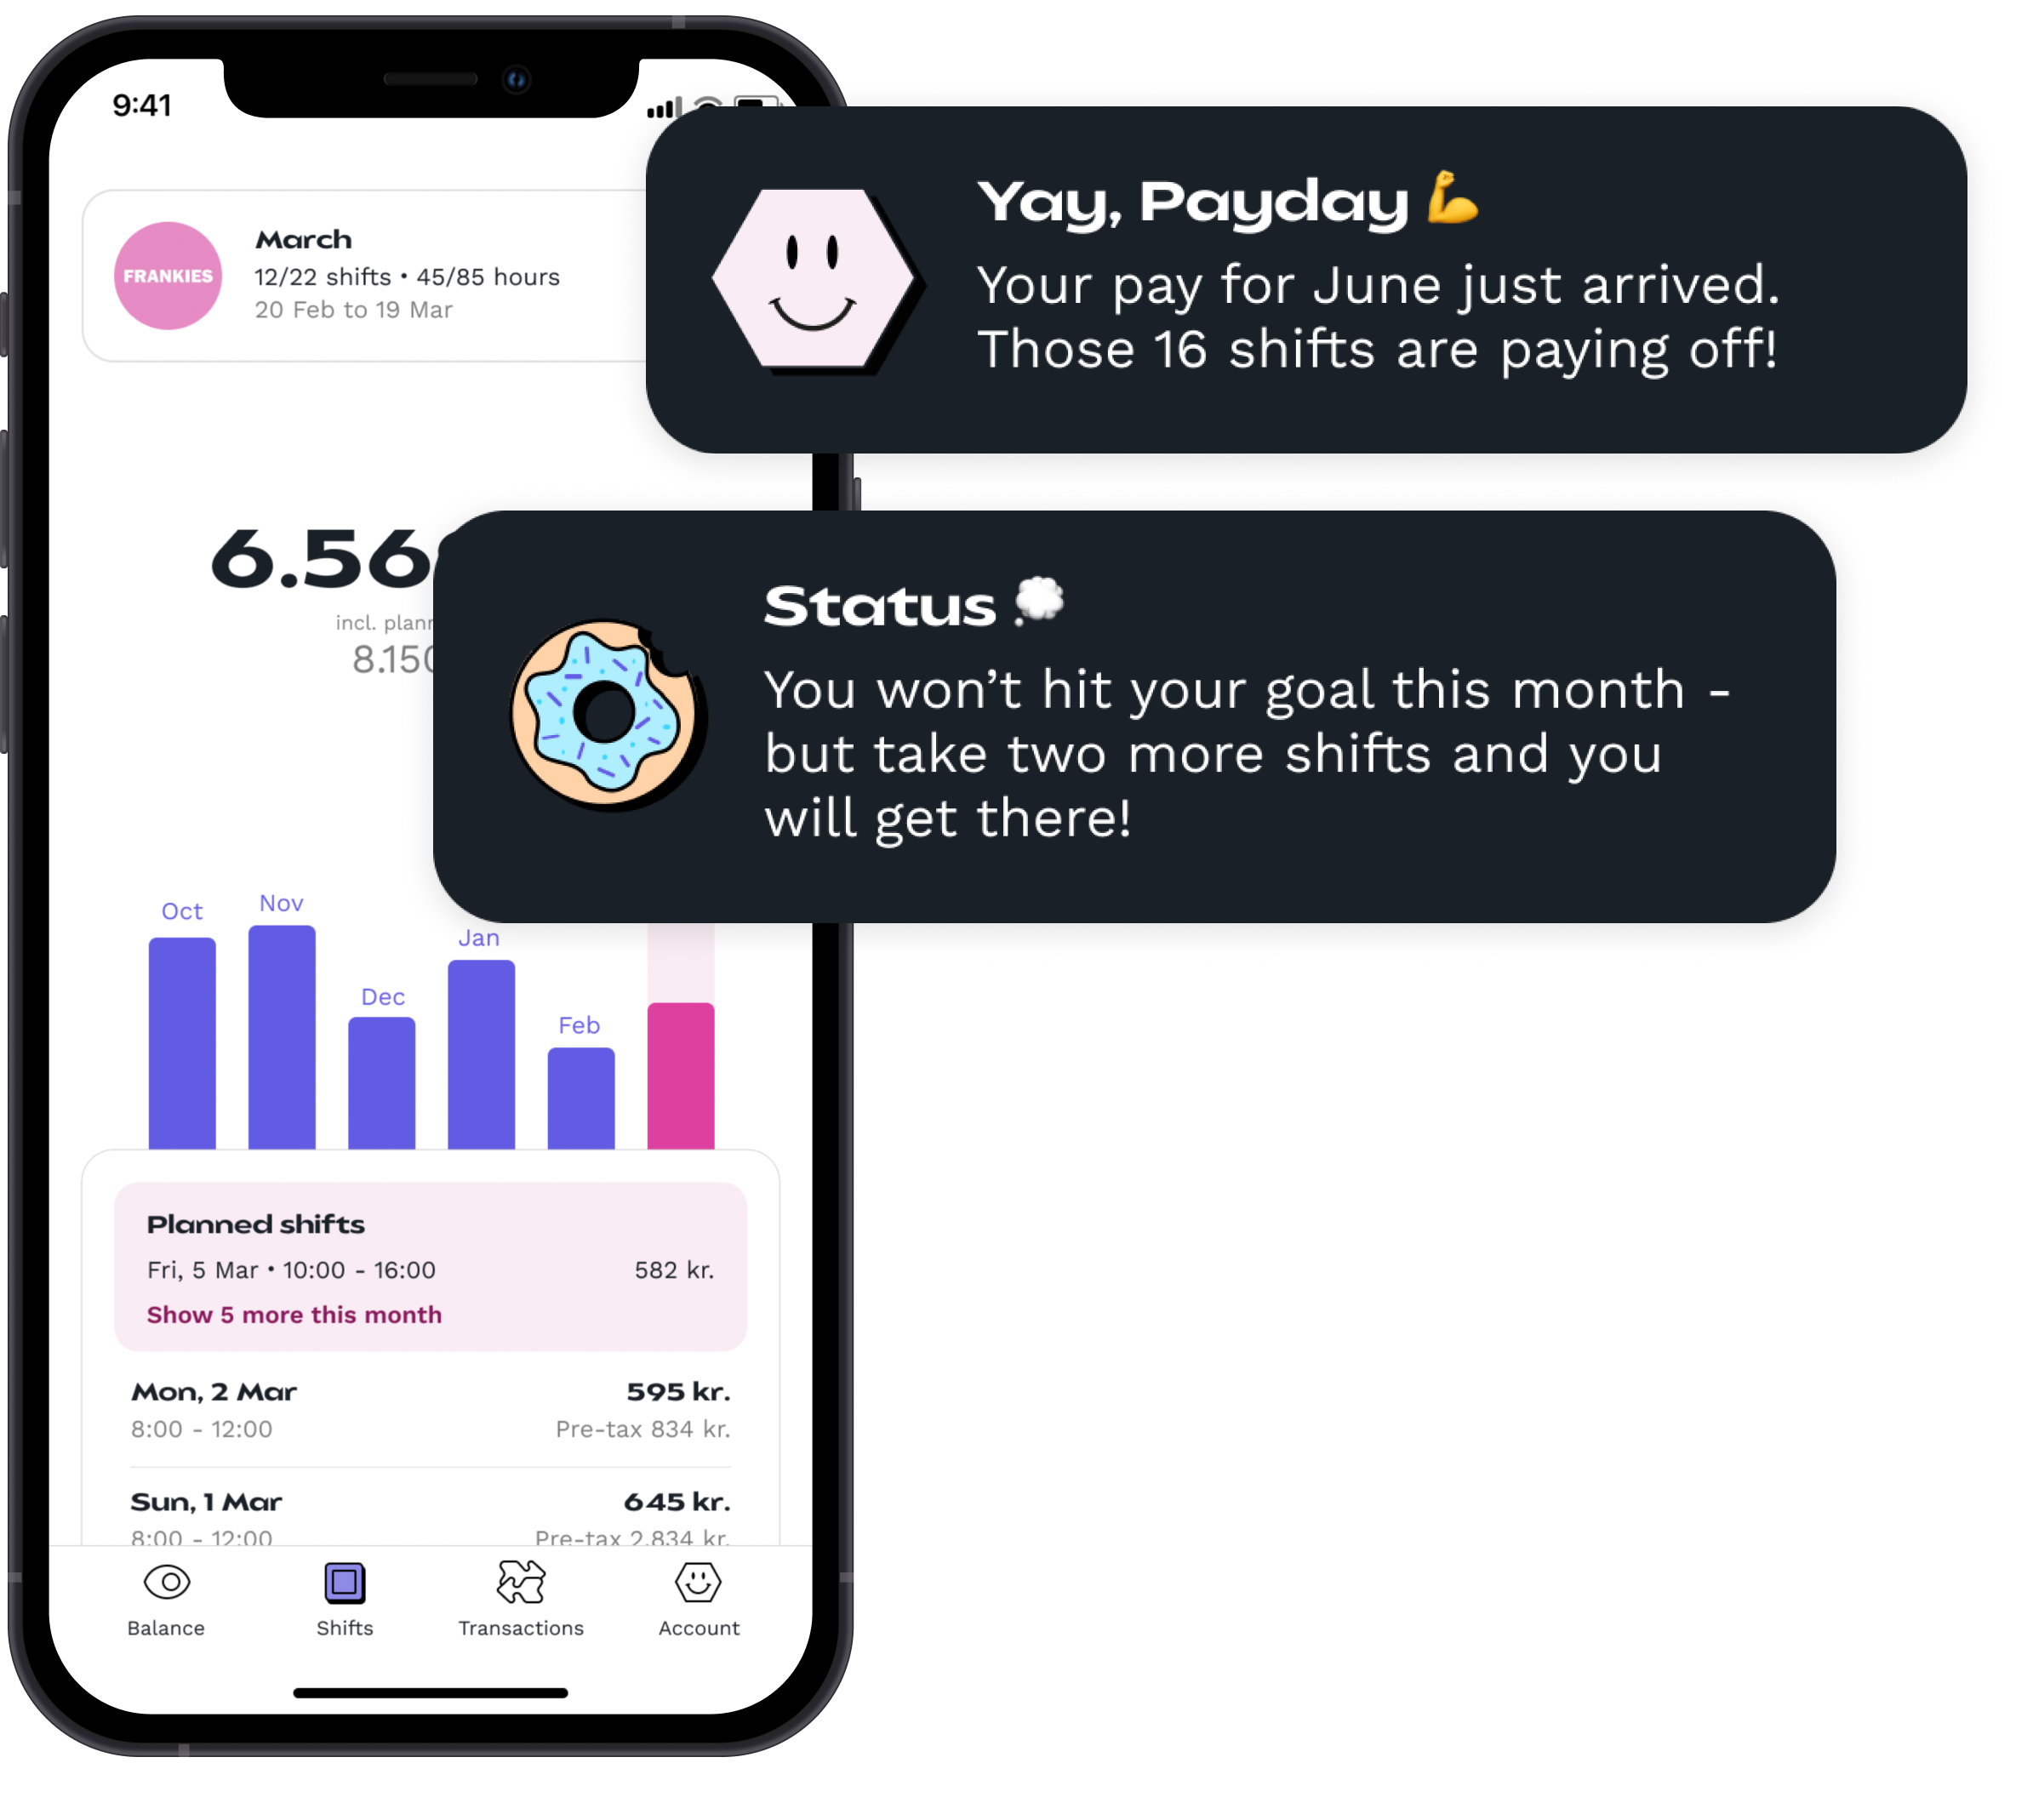 The preview of what your employees get. The picture shows the shifts page of the app and two examples of notifications that your employees might get throughout the month